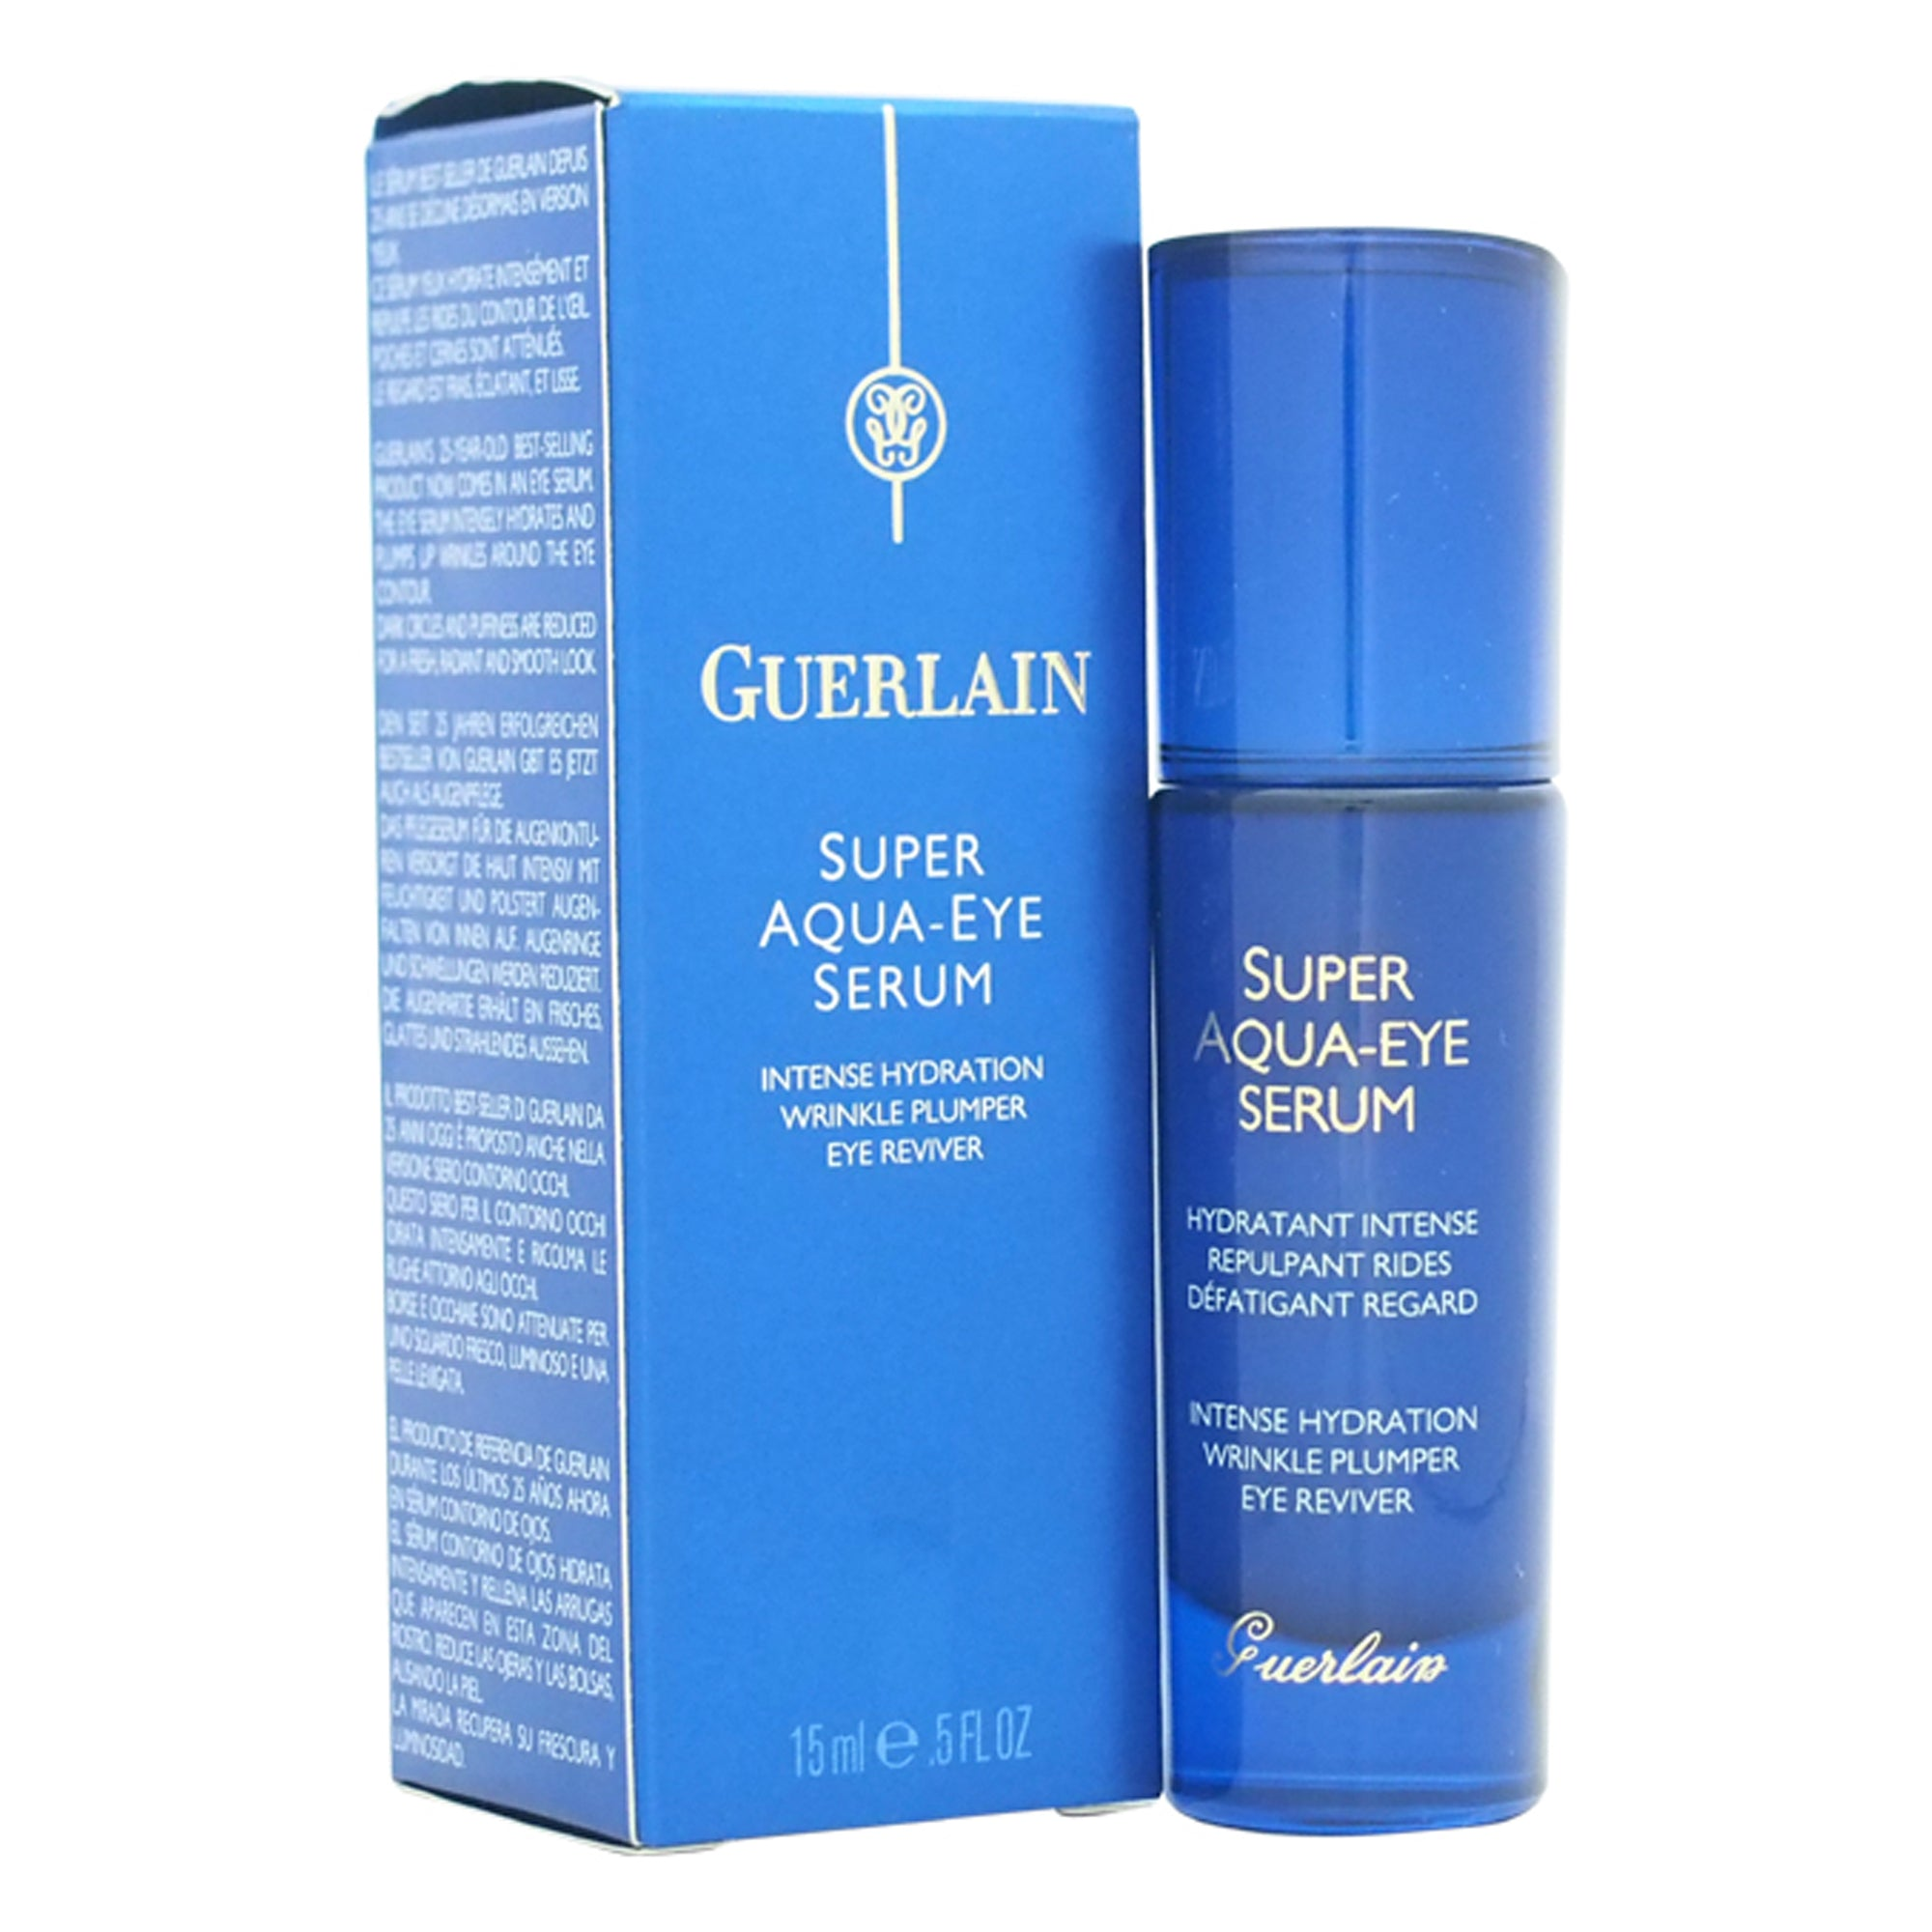 Guerlain Super Aqua Eye Serum Intense Hydration Wrinkle Plumper